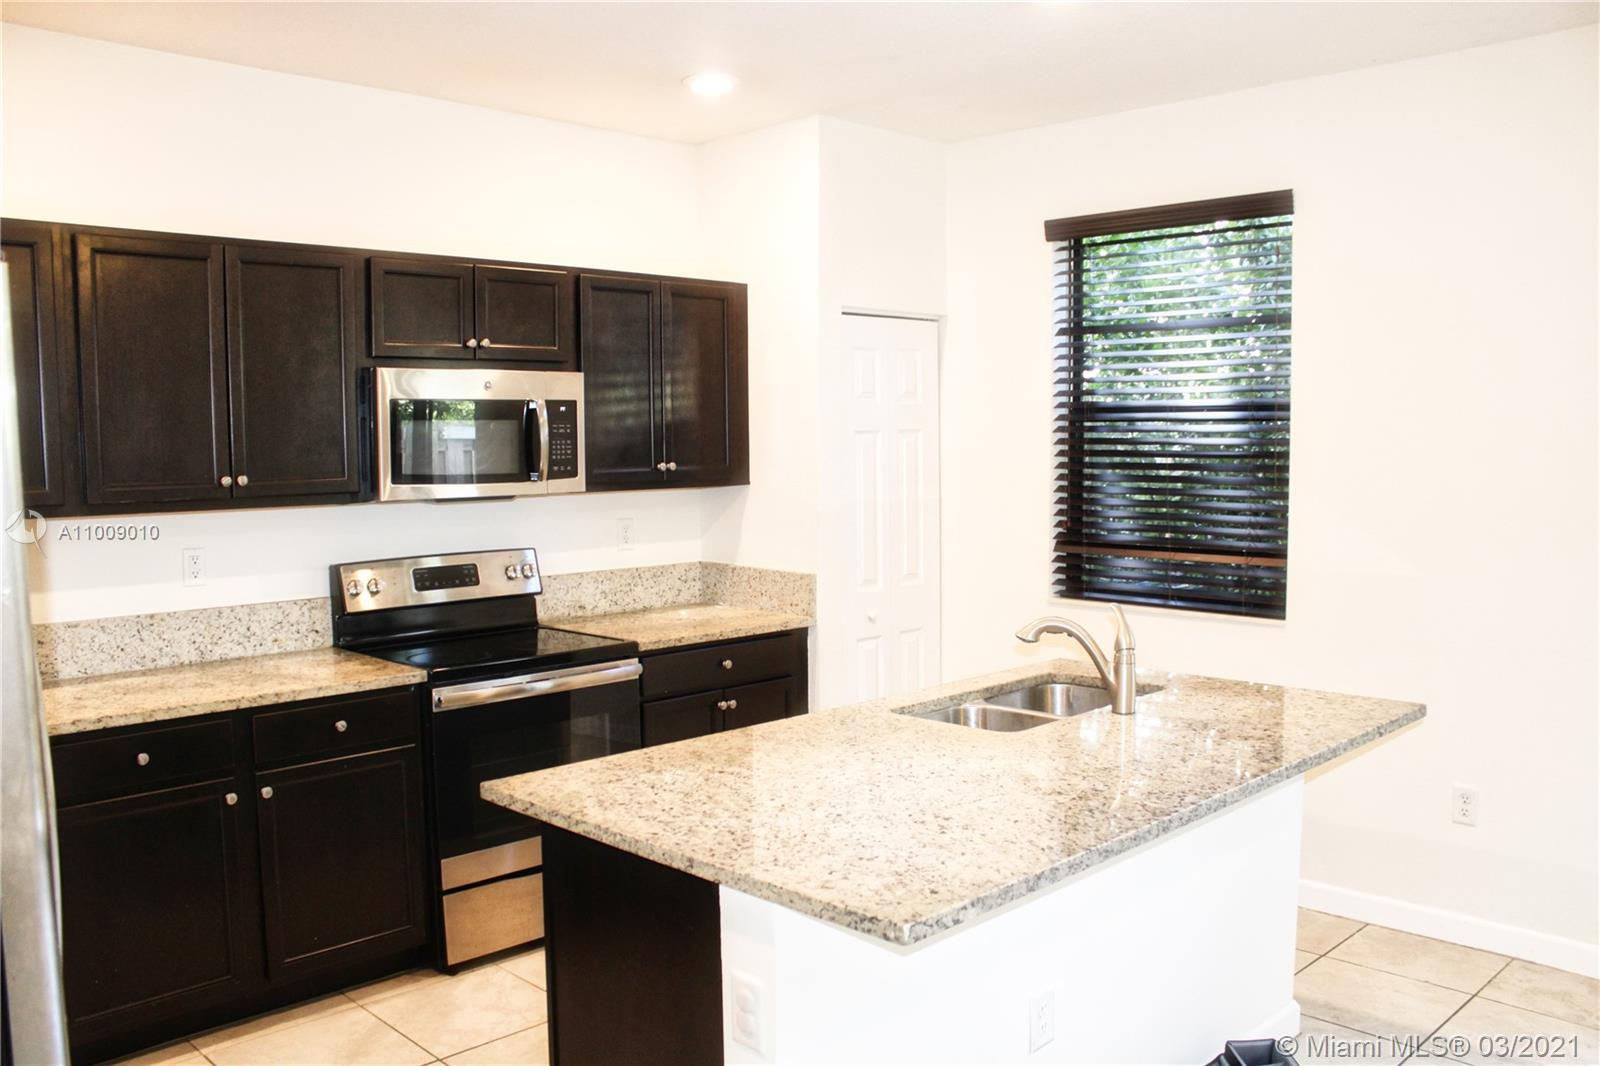 25247 SW 114th Ct #255247 Property Photo - Homestead, FL real estate listing